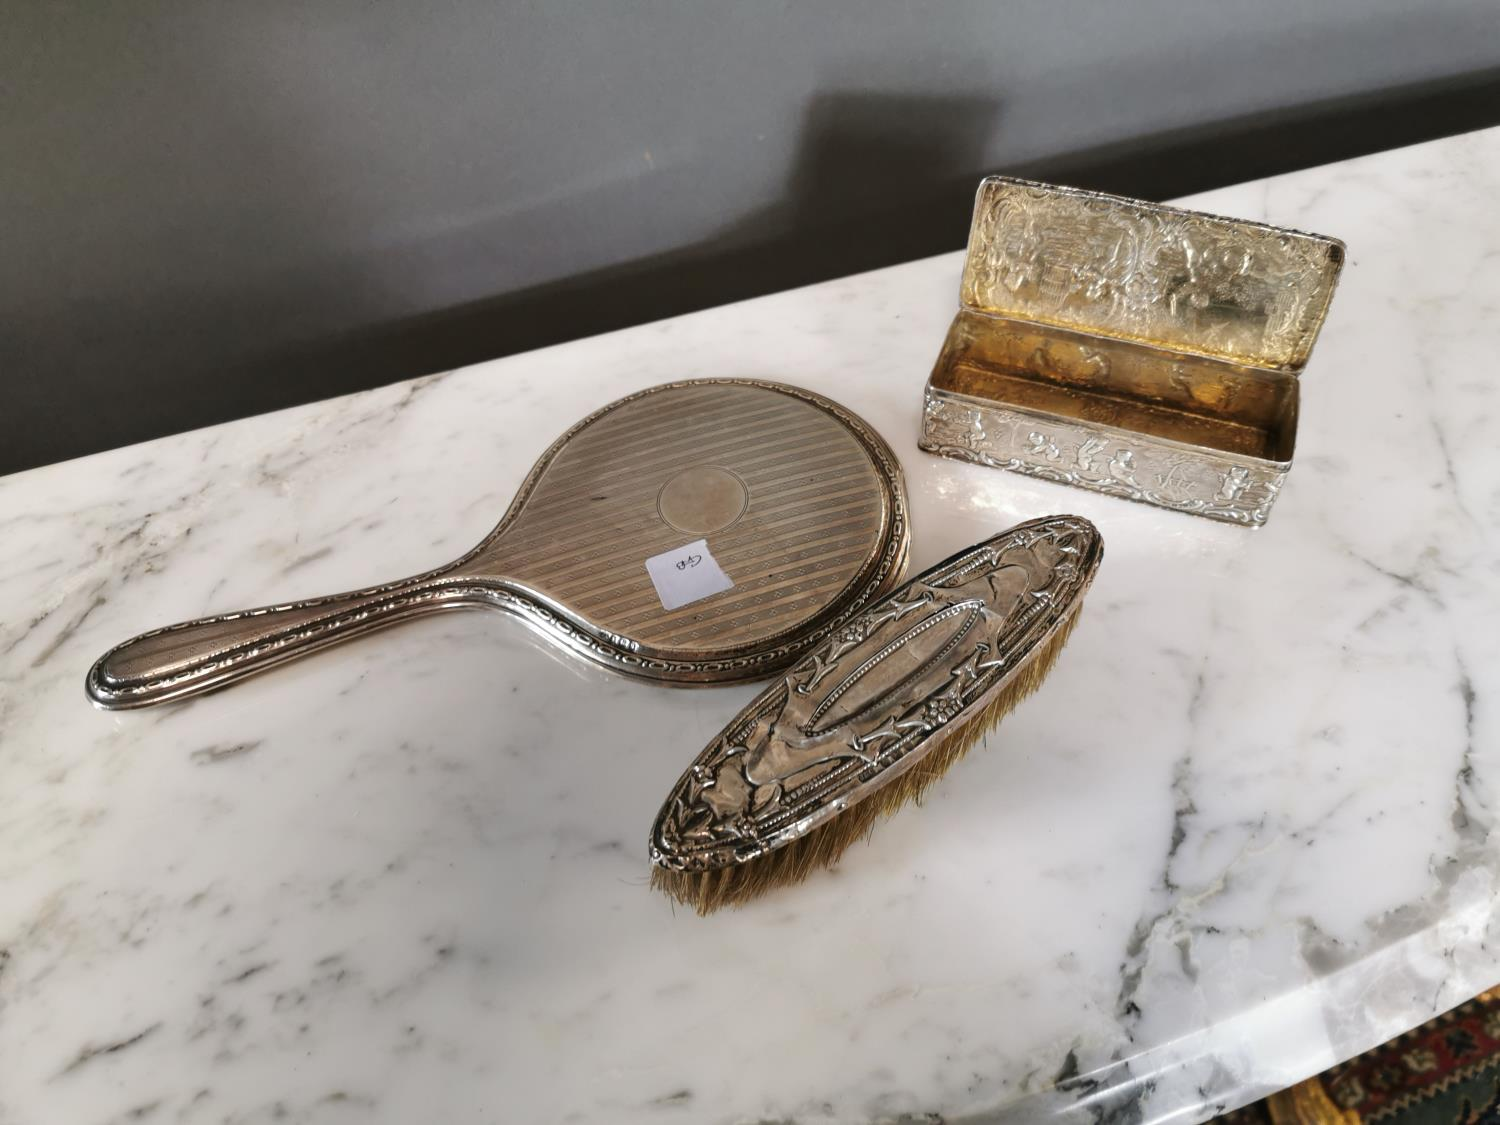 English silver hand mirror, brush and clip box. - Image 2 of 2